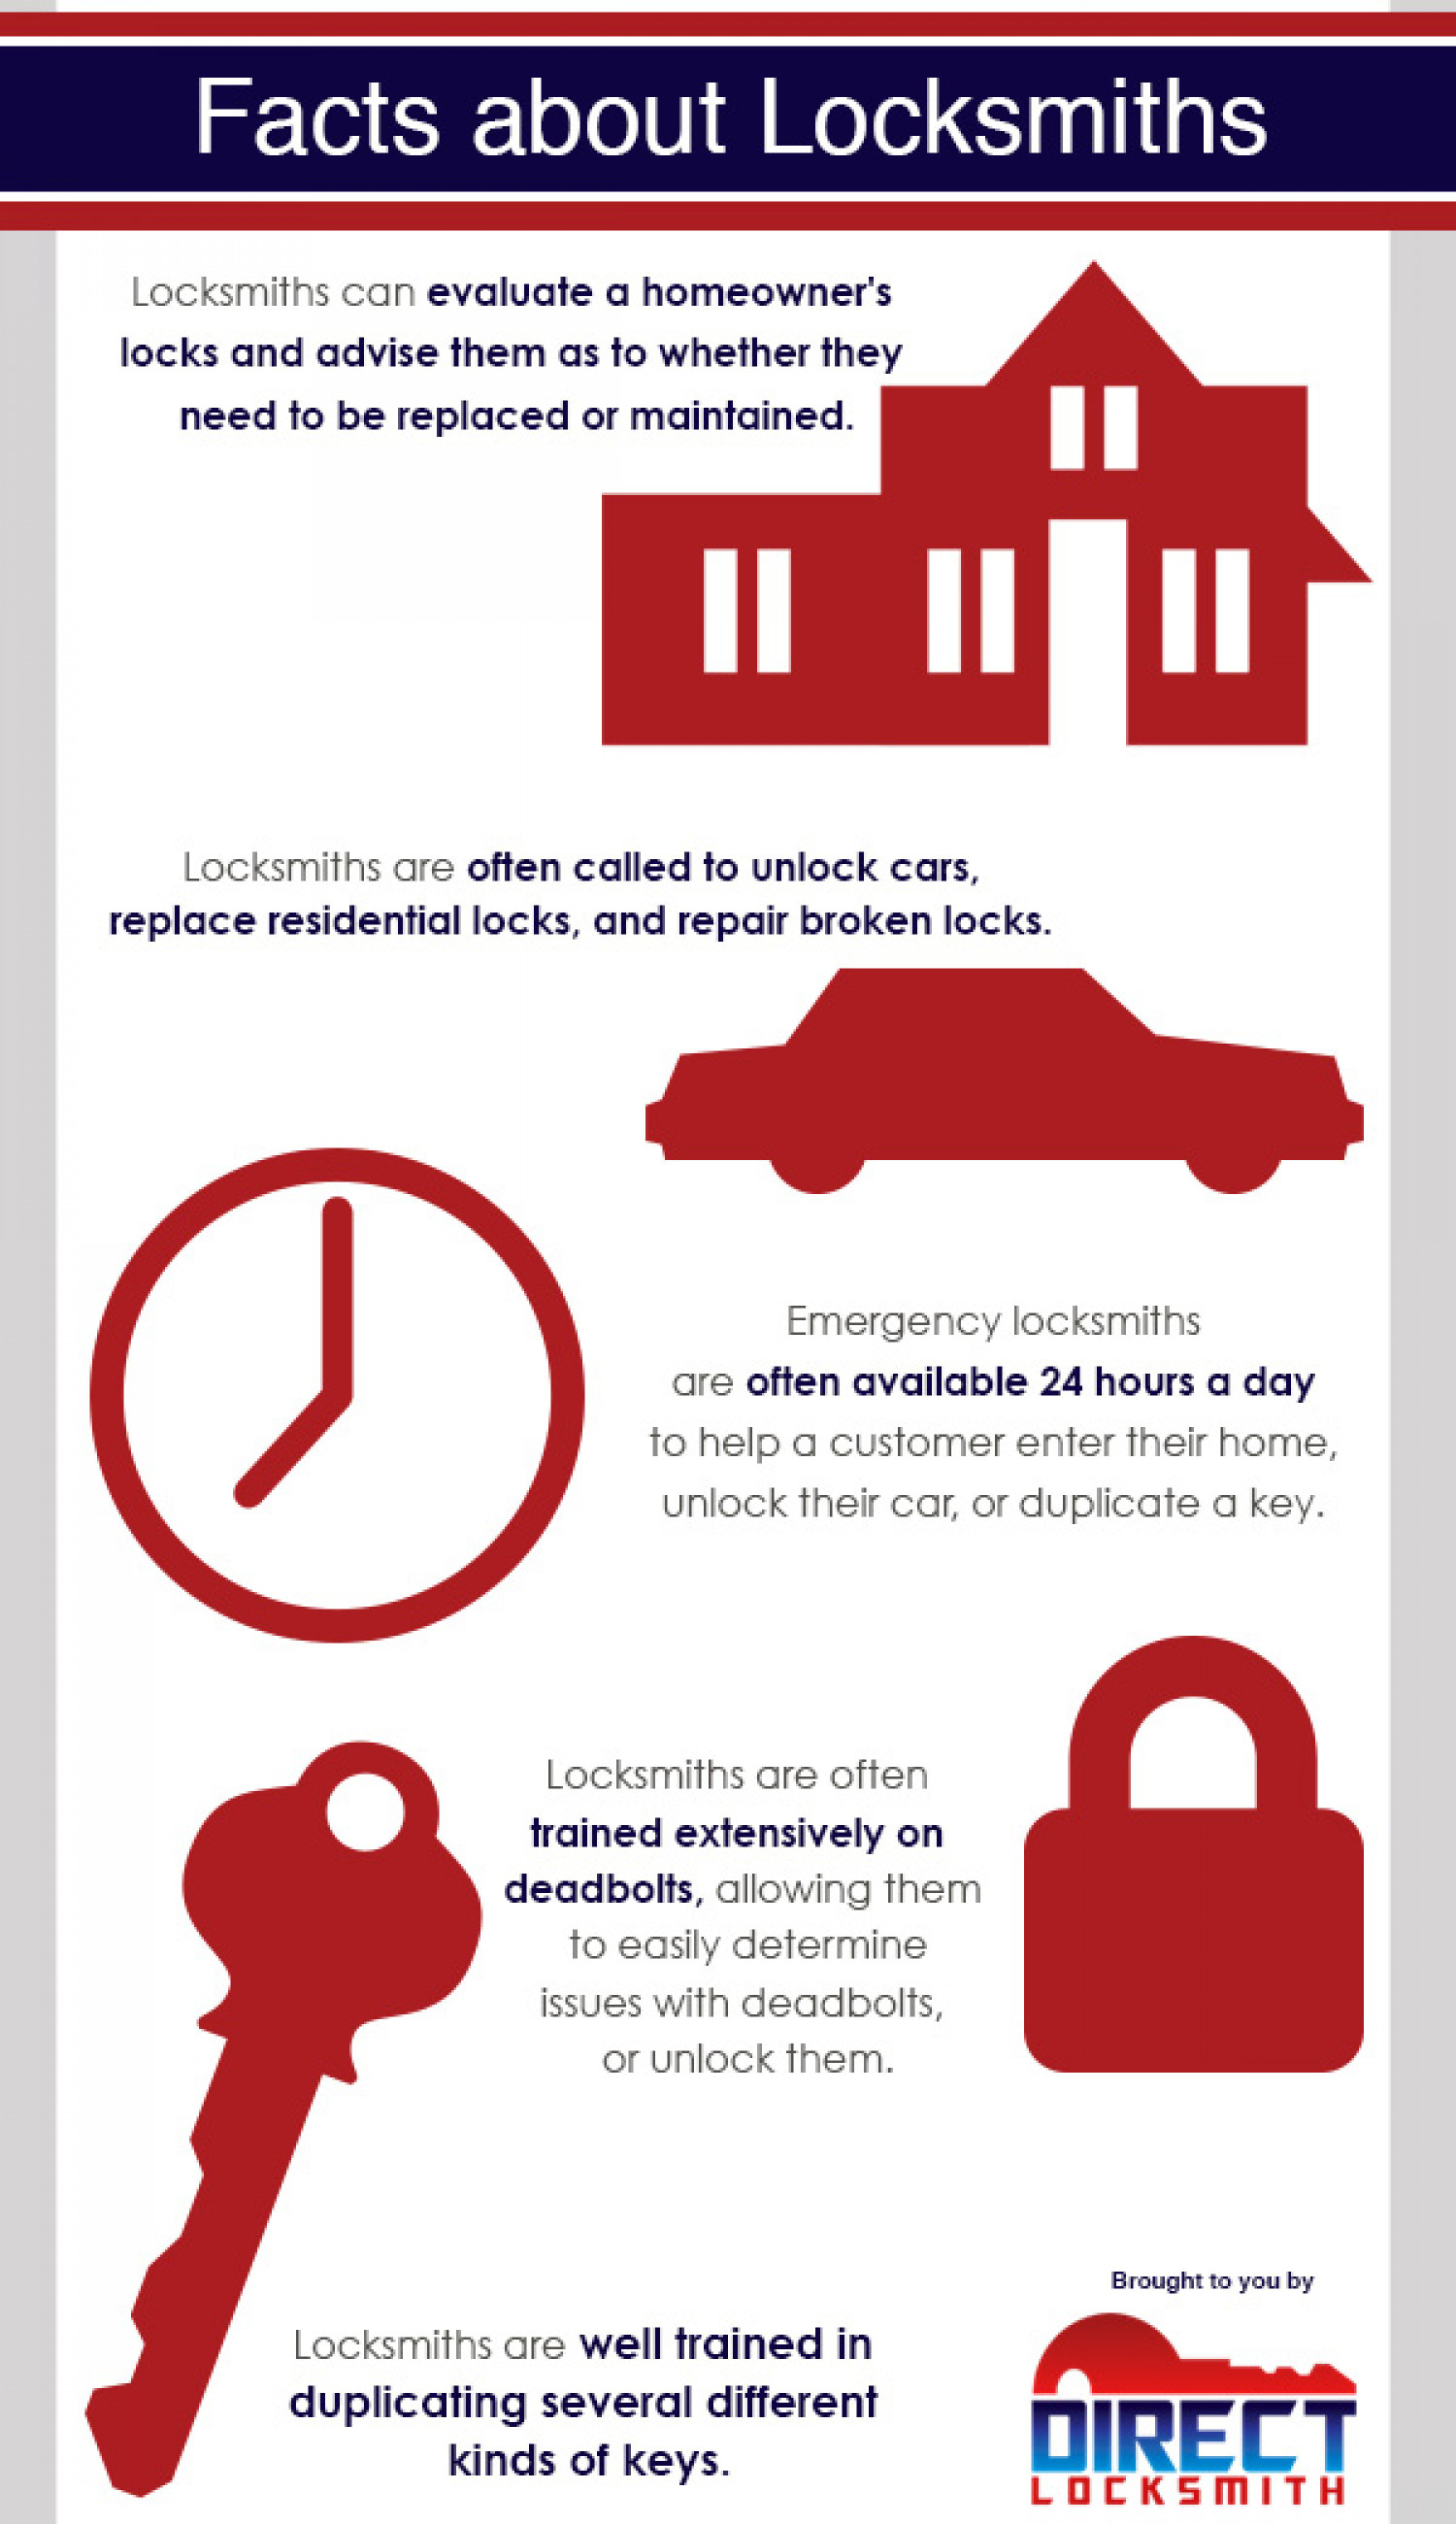 Facts About Locksmiths Infographic